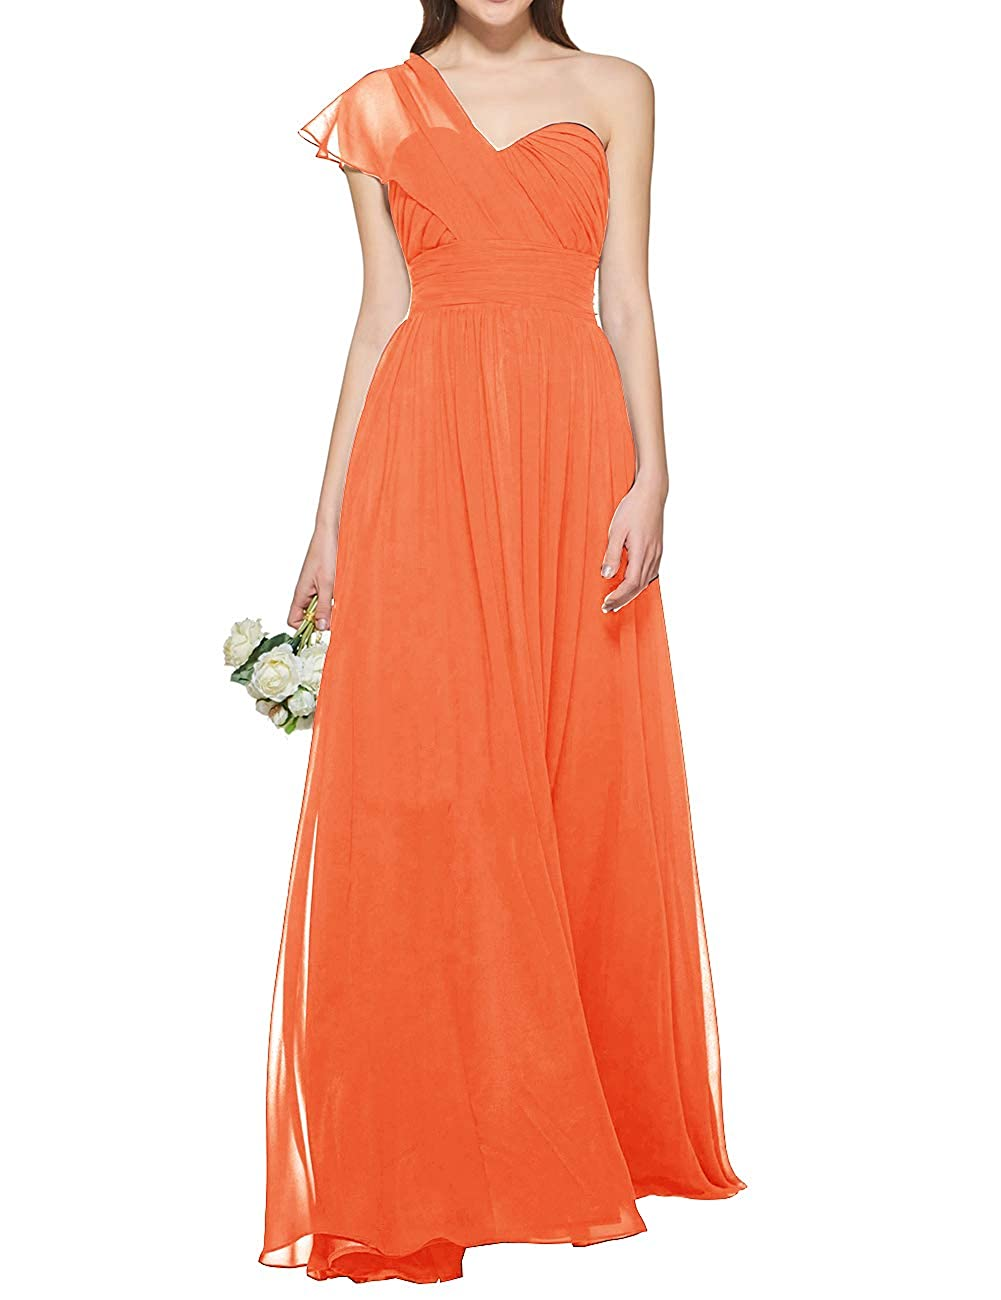 orange Uther Women's One Shoulder Bridesmaid Dress Long Prom Evening Gown A Line